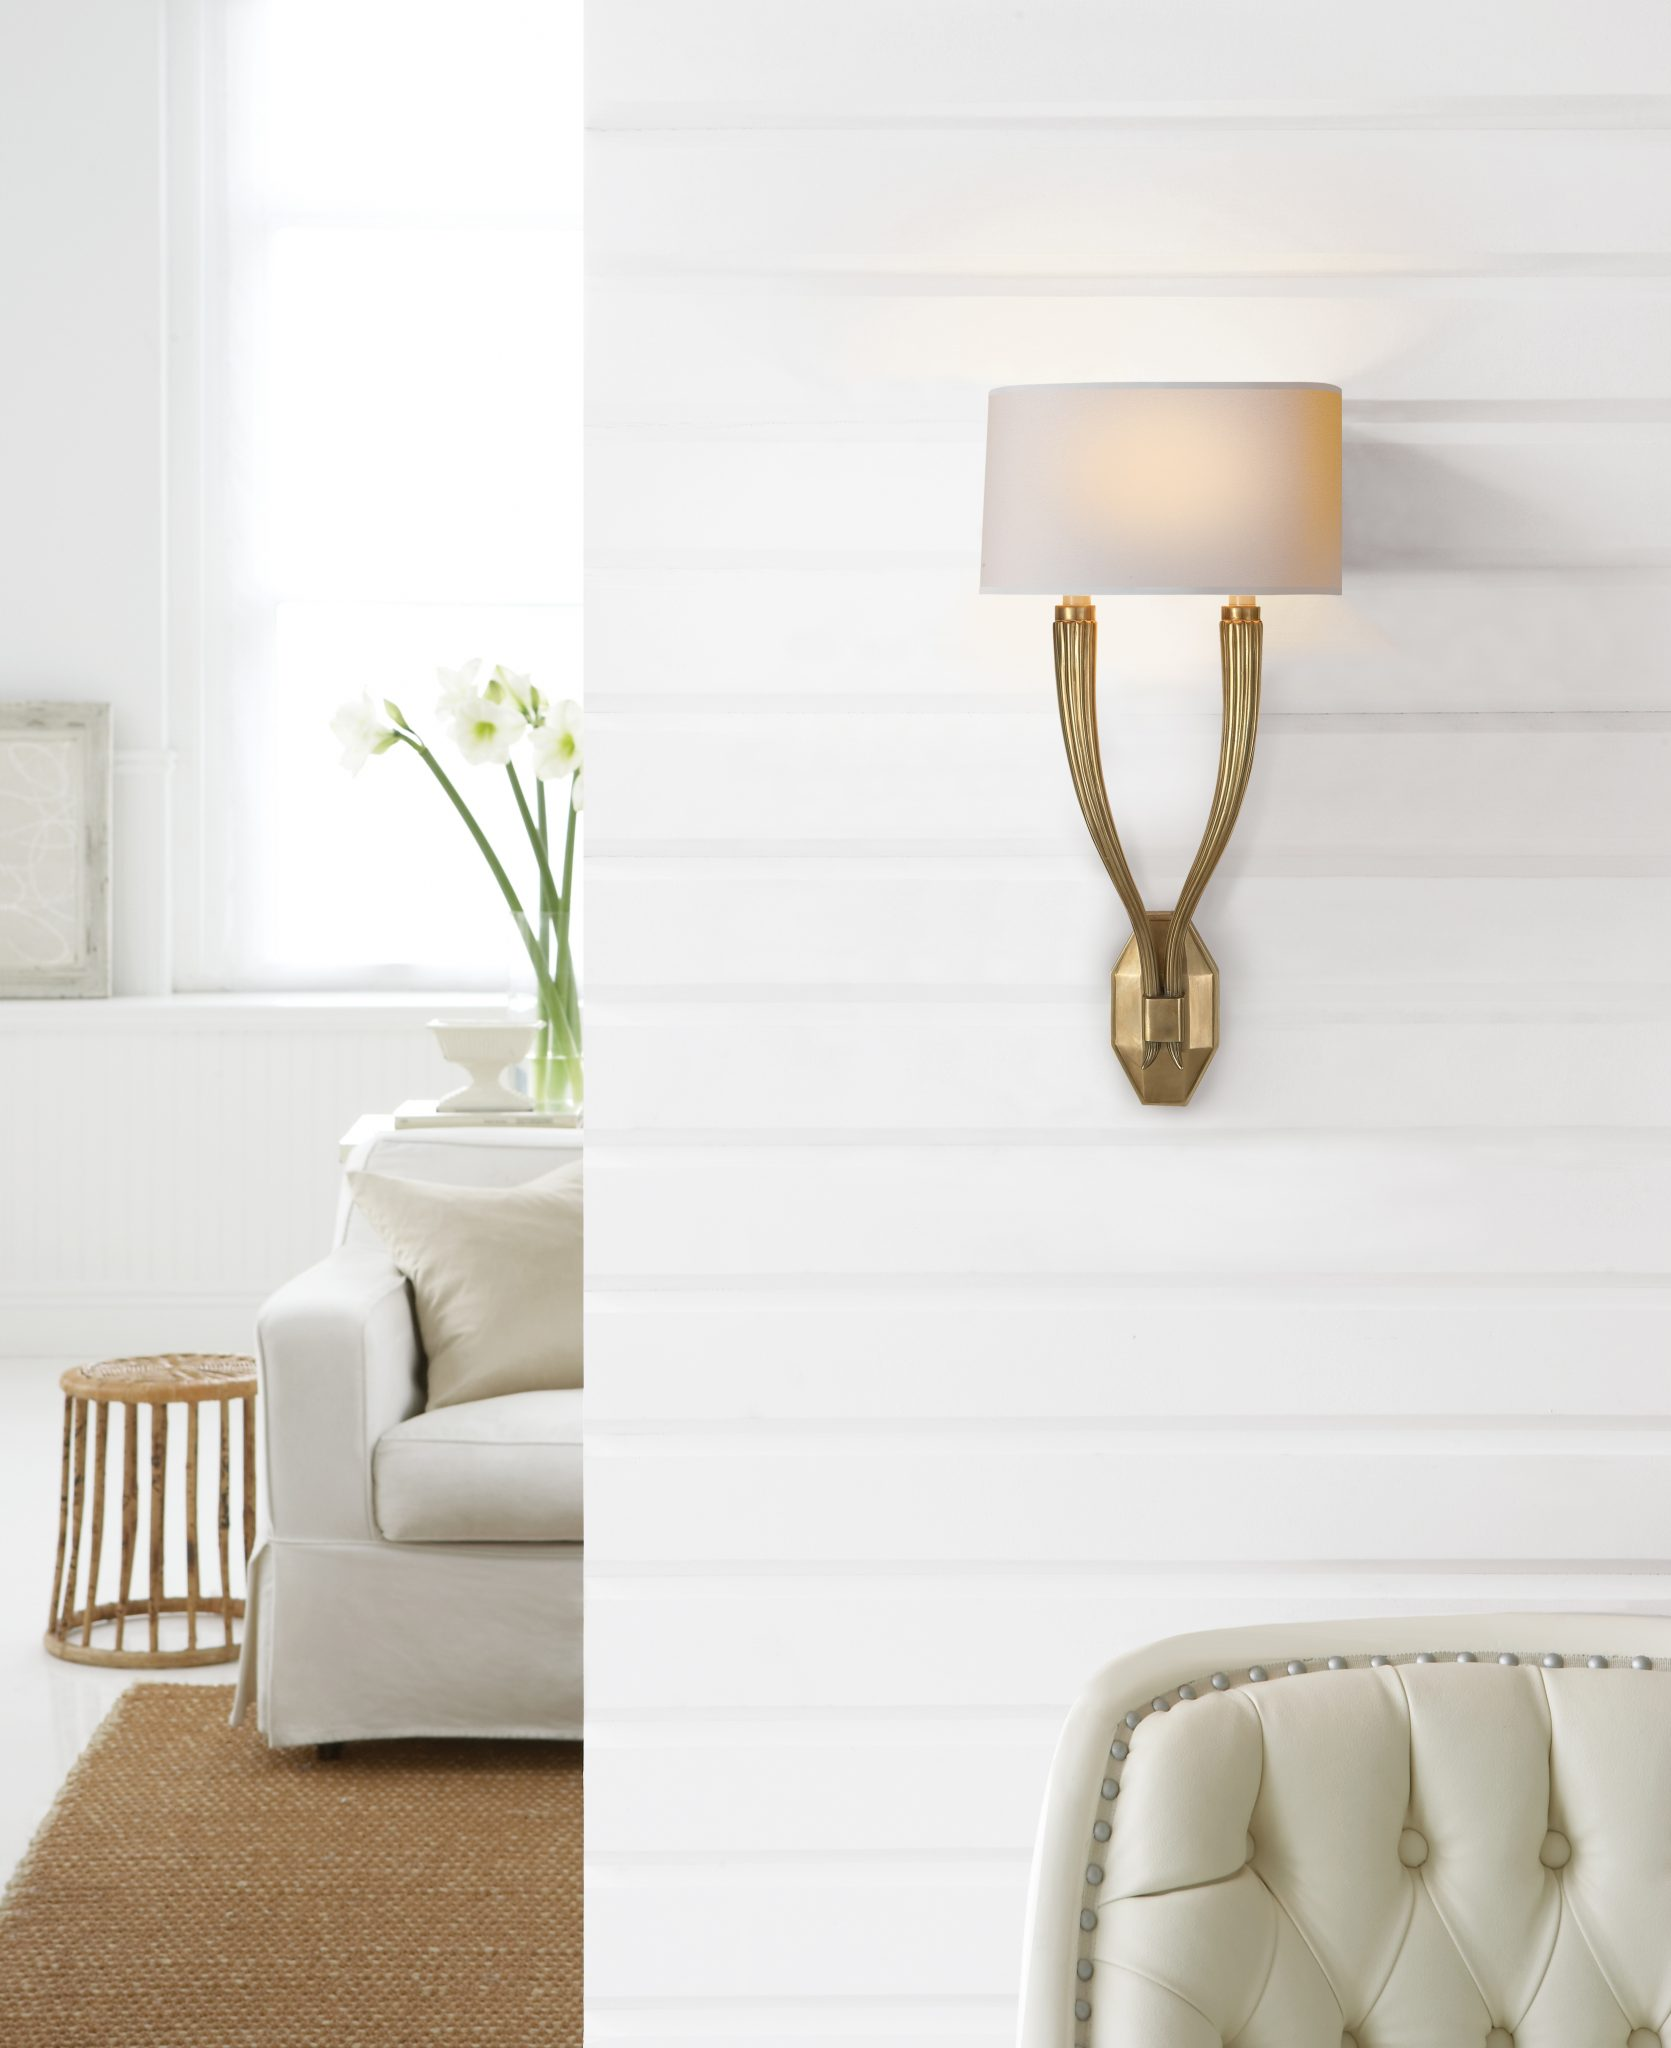 lighting visual home furnishing a sconce s products comfort